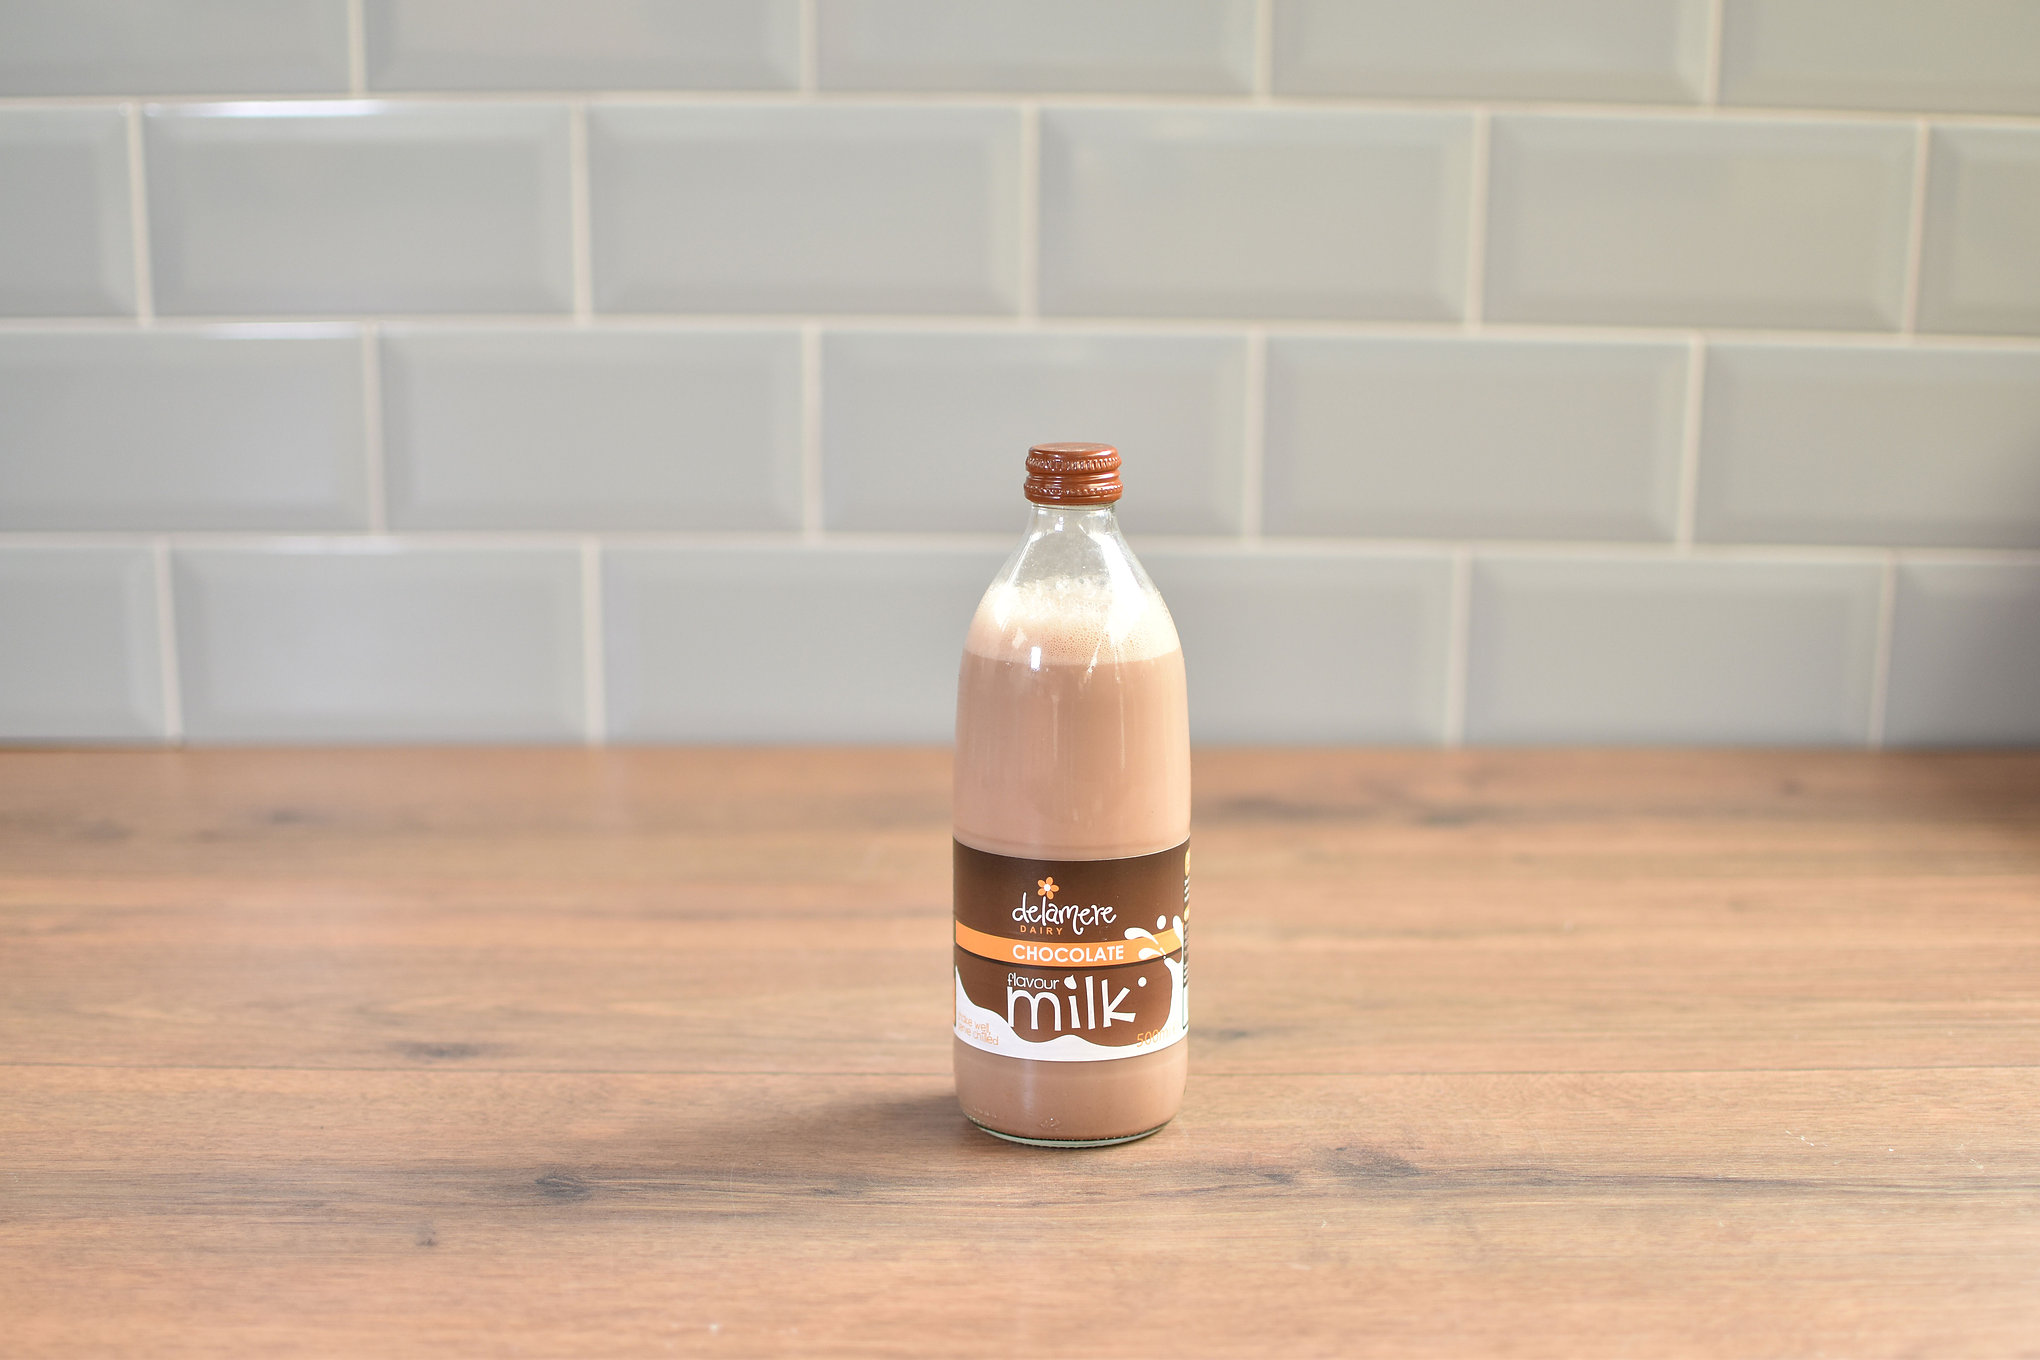 Delamere Chocolate Milk - 500ml Glass Bottle